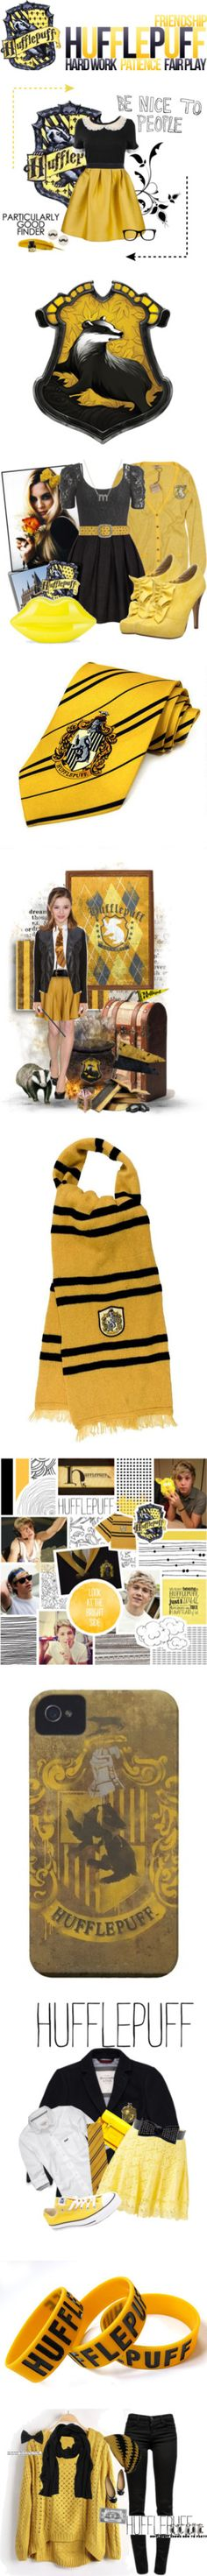 """Hufflepuff Pride"" by k-strautz ❤ liked on Polyvore"